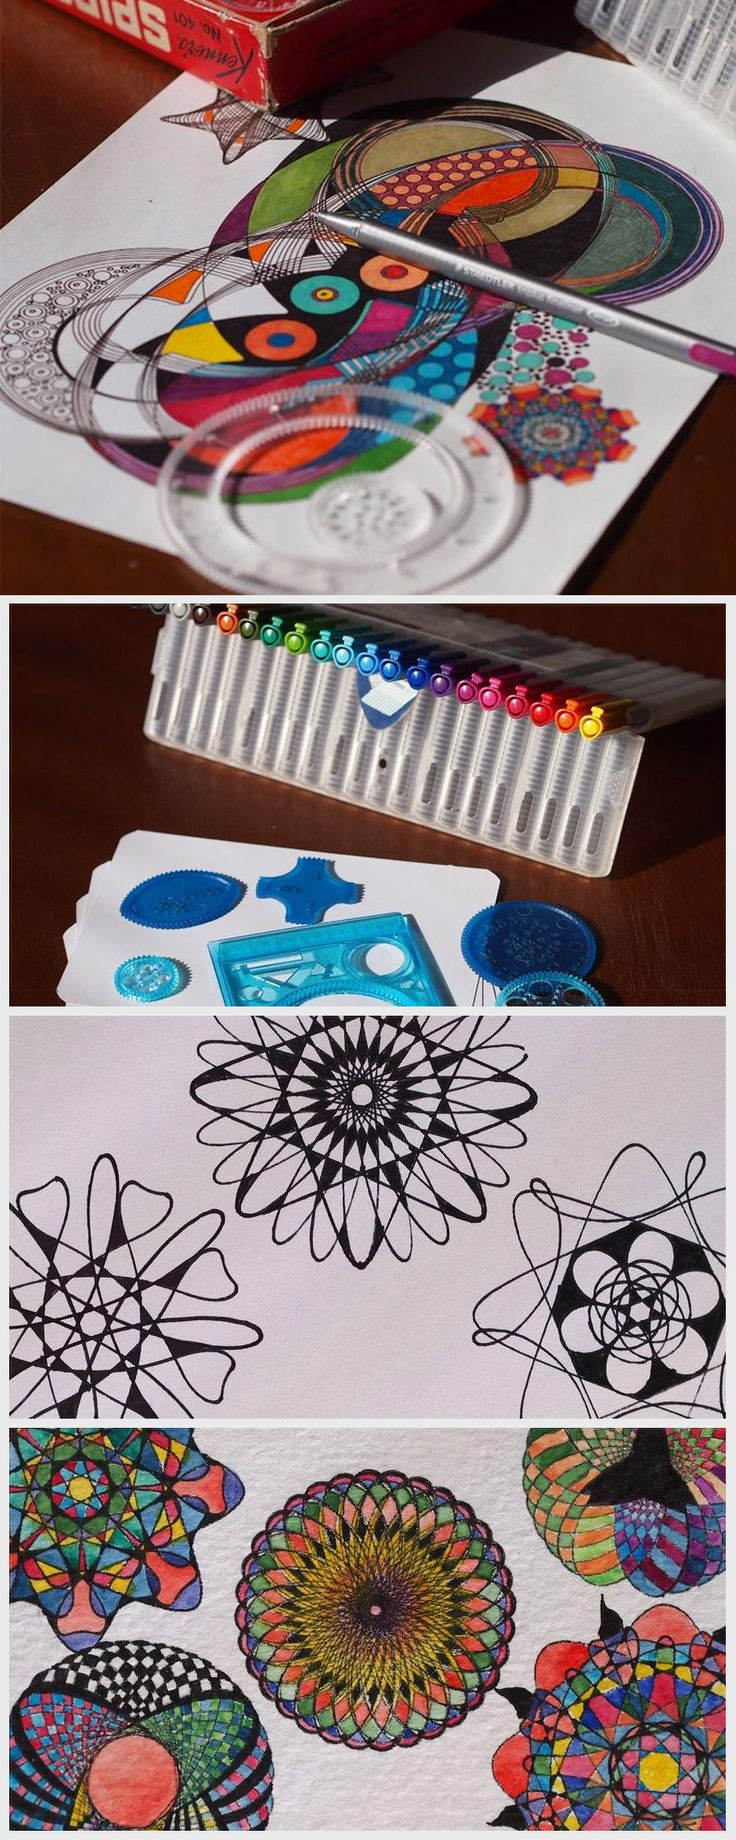 A spirograph is an easy way to make lots of cool, unique thank-you cards quickly.